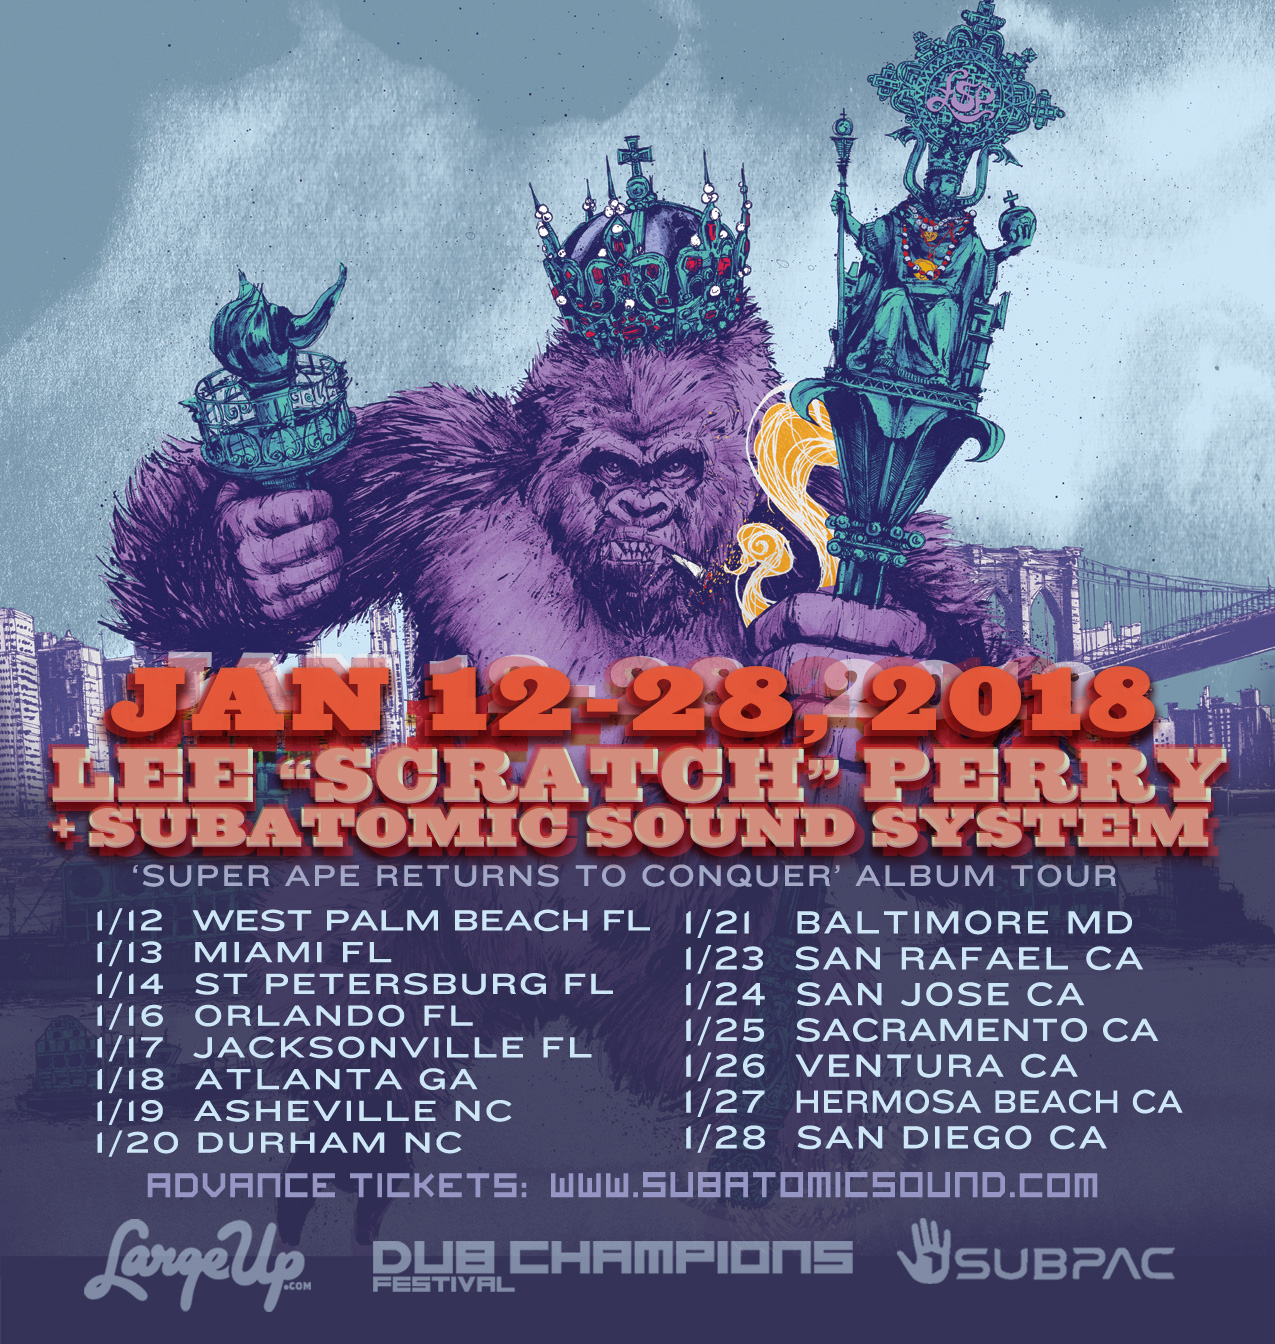 Lee scratch perry subatomic sound system live at jack rabbits lee scratch perry subatomic sound system super ape returns to conquer usa tour dates 2018 malvernweather Choice Image